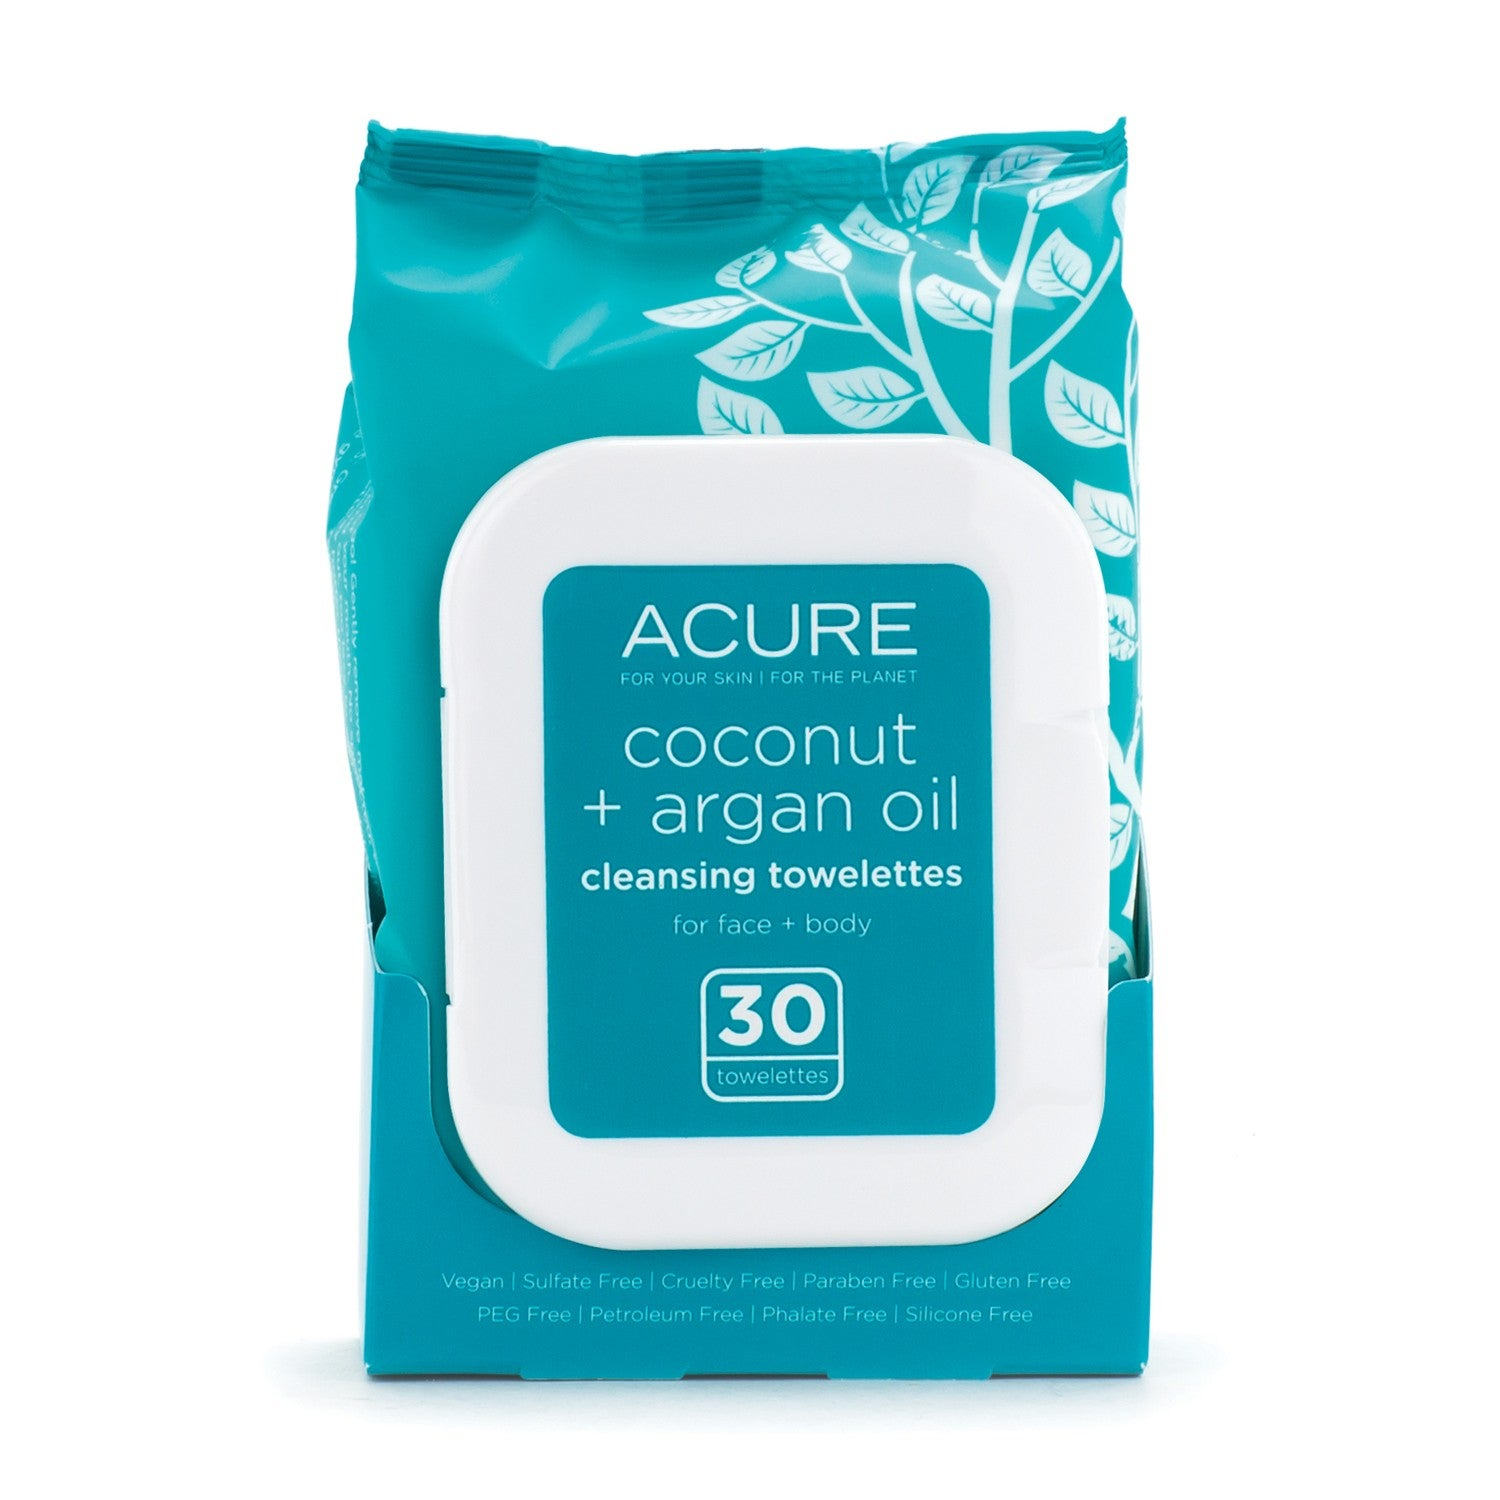 Acure Organics Coconut & Argan Oil Cleansing Towelettes